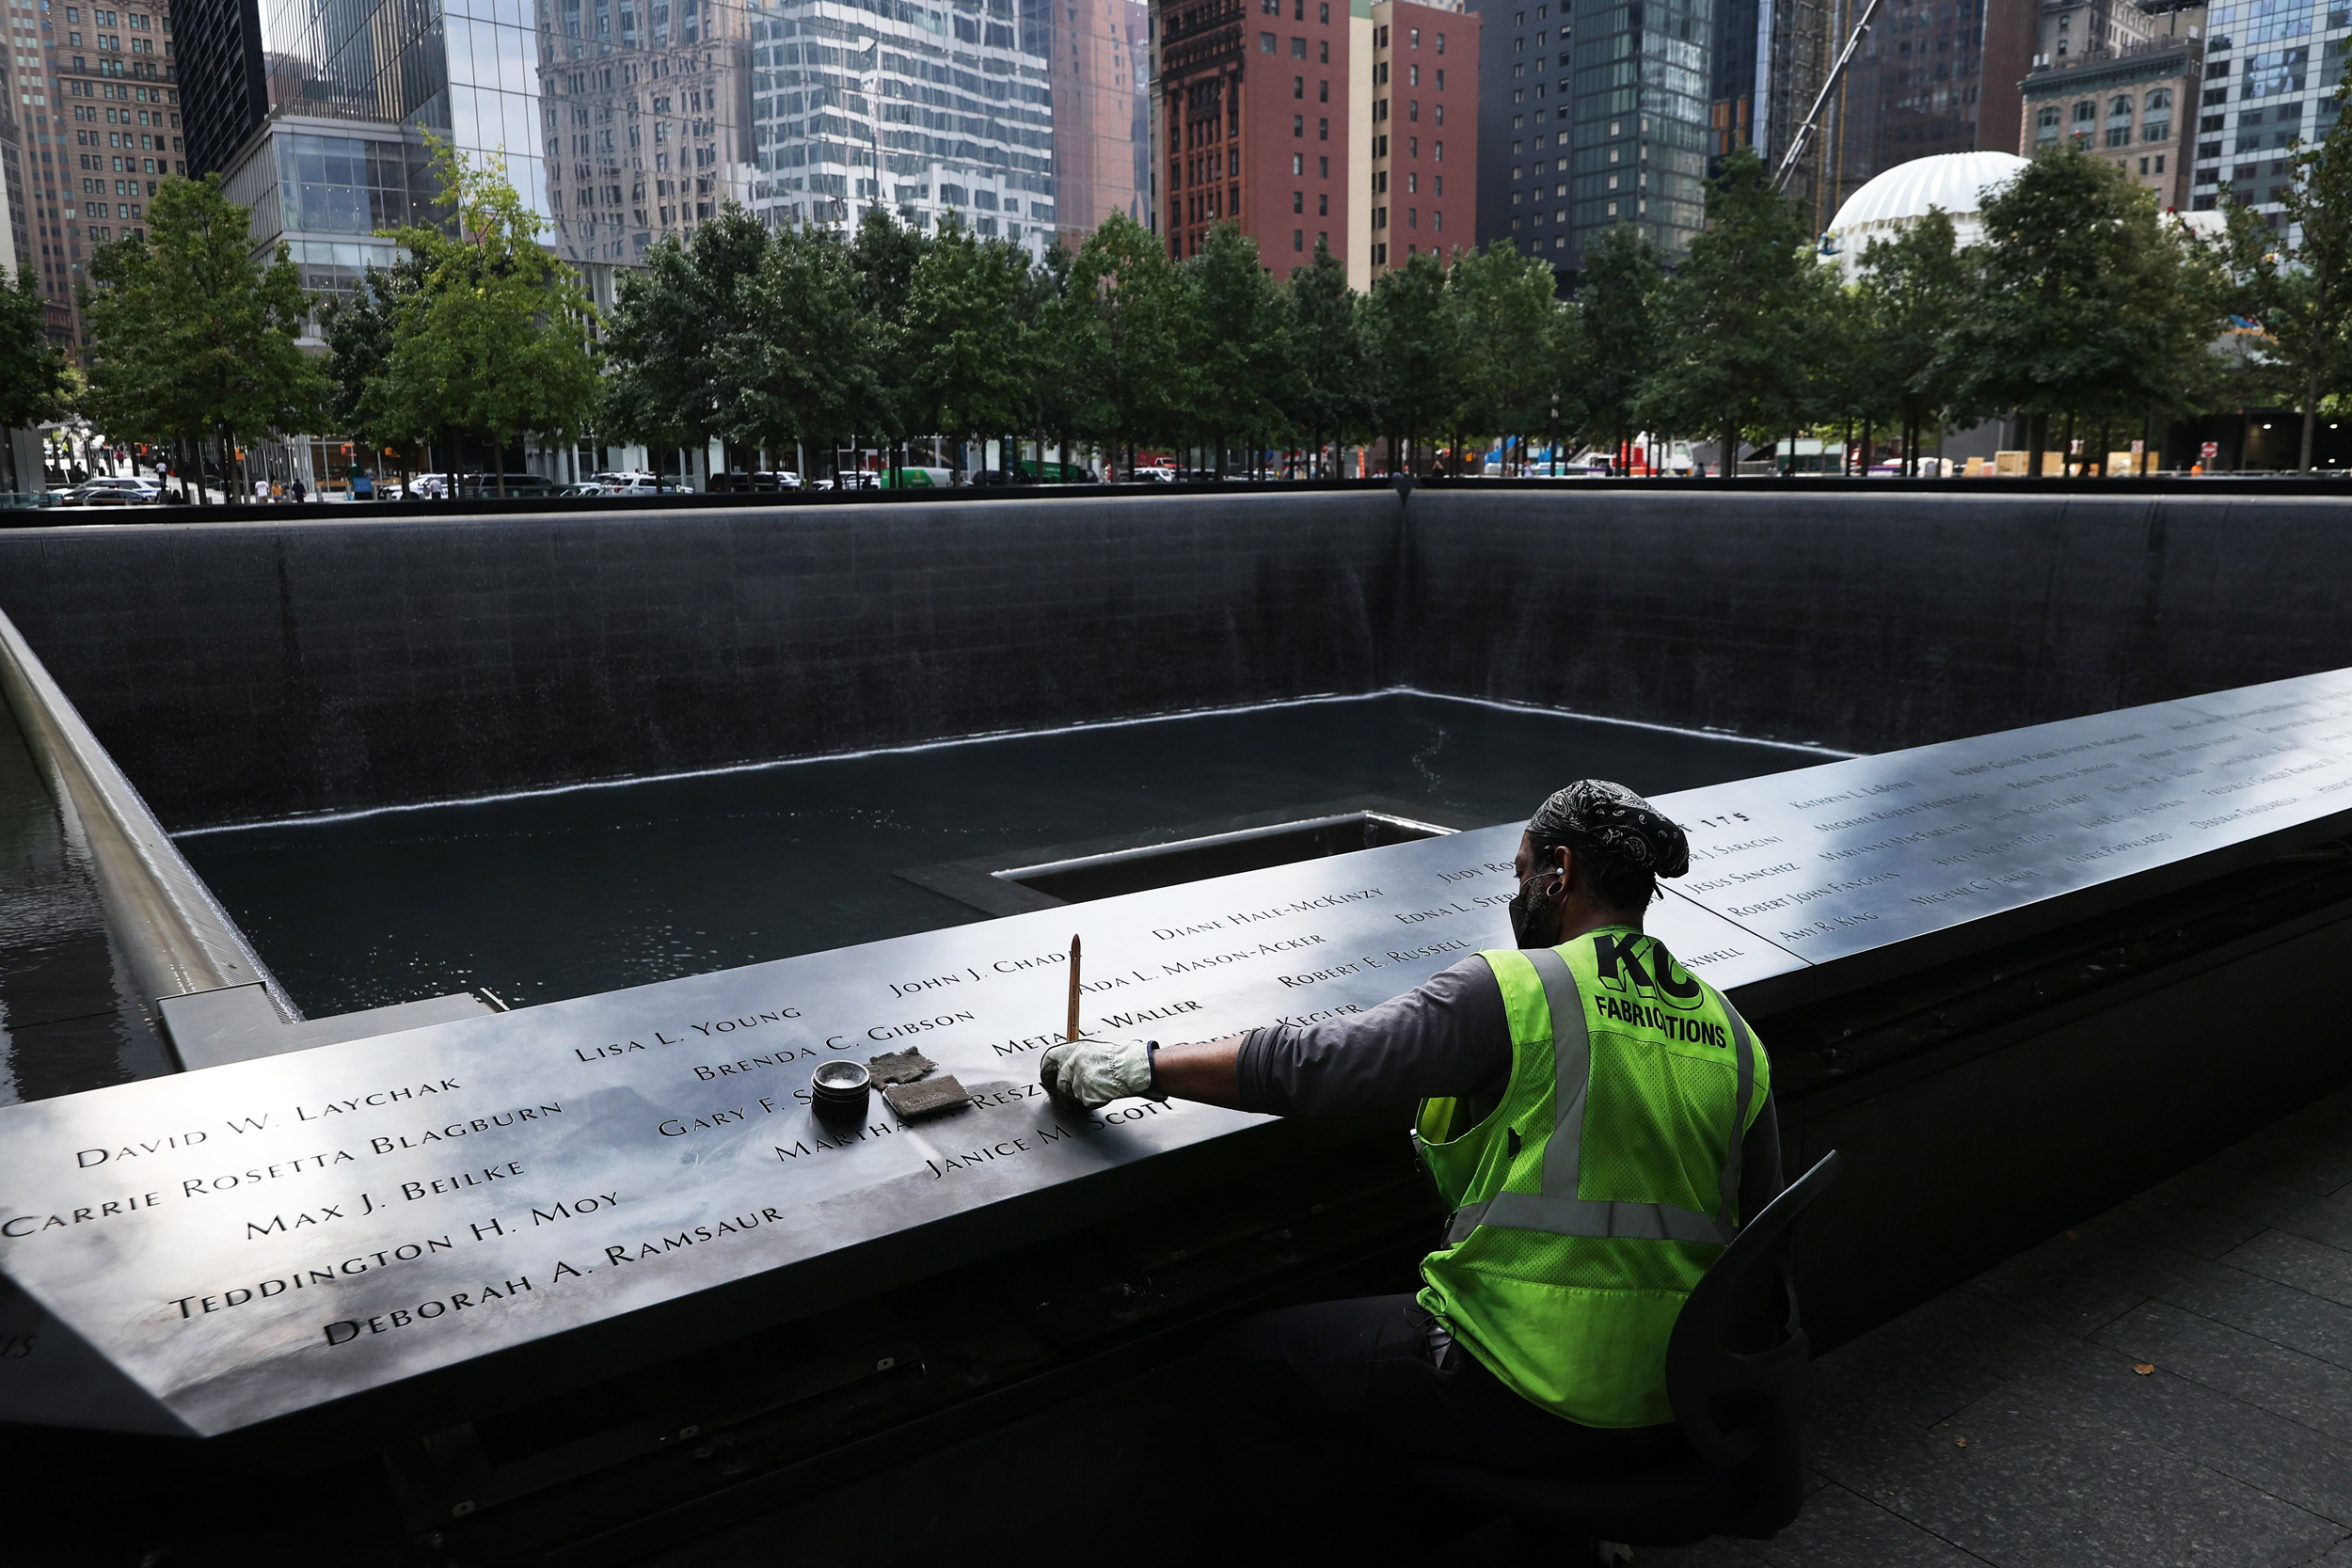 2 people killed in World Trade Center on 9/11 identified with DNA ahead of 20th anniversary